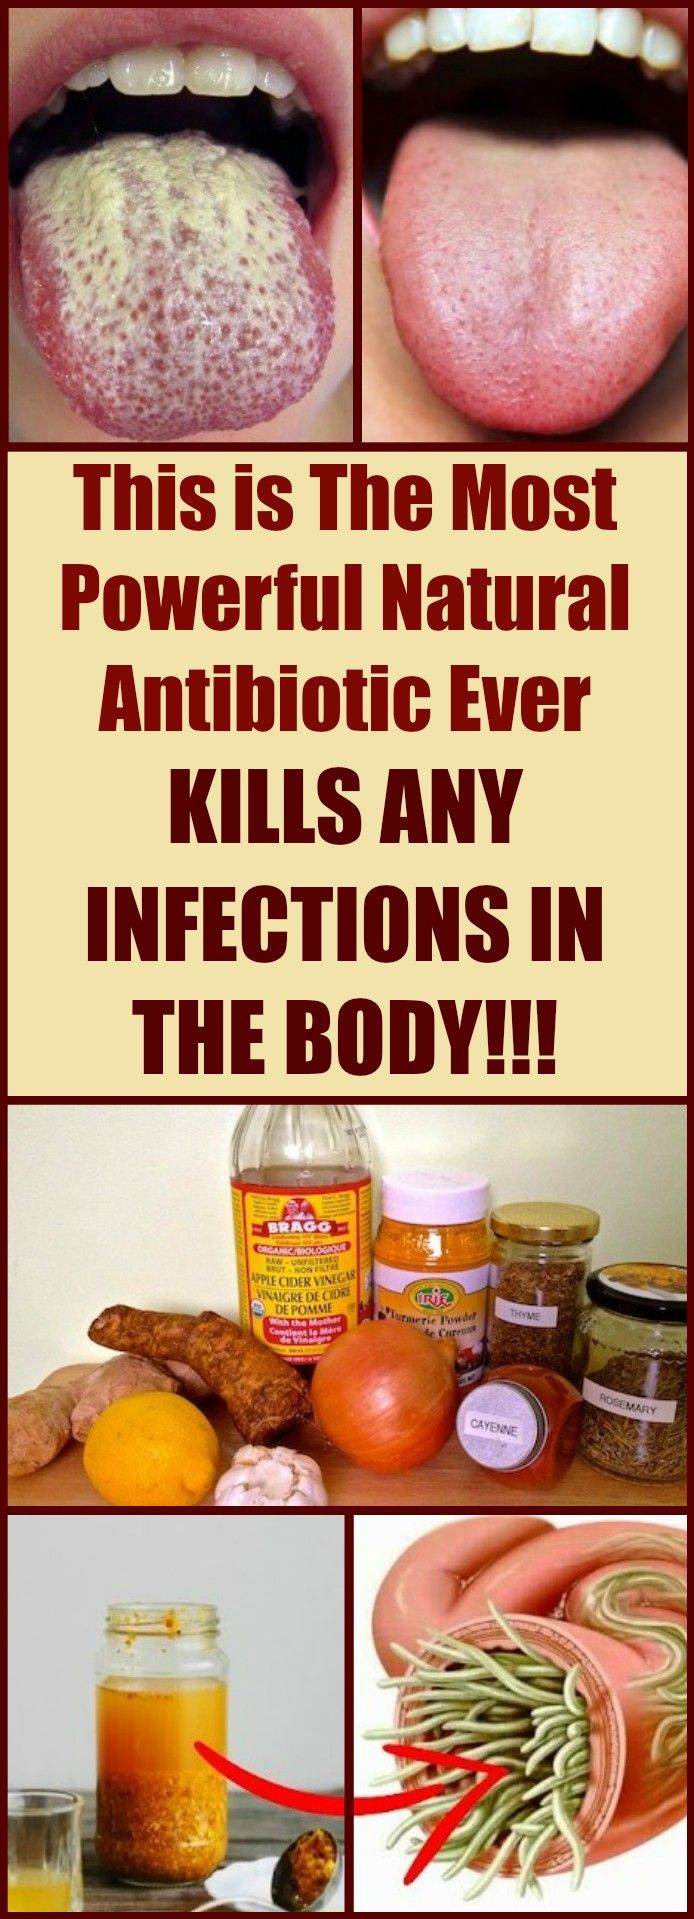 This is the most #powerful natural #antibiotic ever. KILLS ANY #INFECTIONS IN THE BODY!!